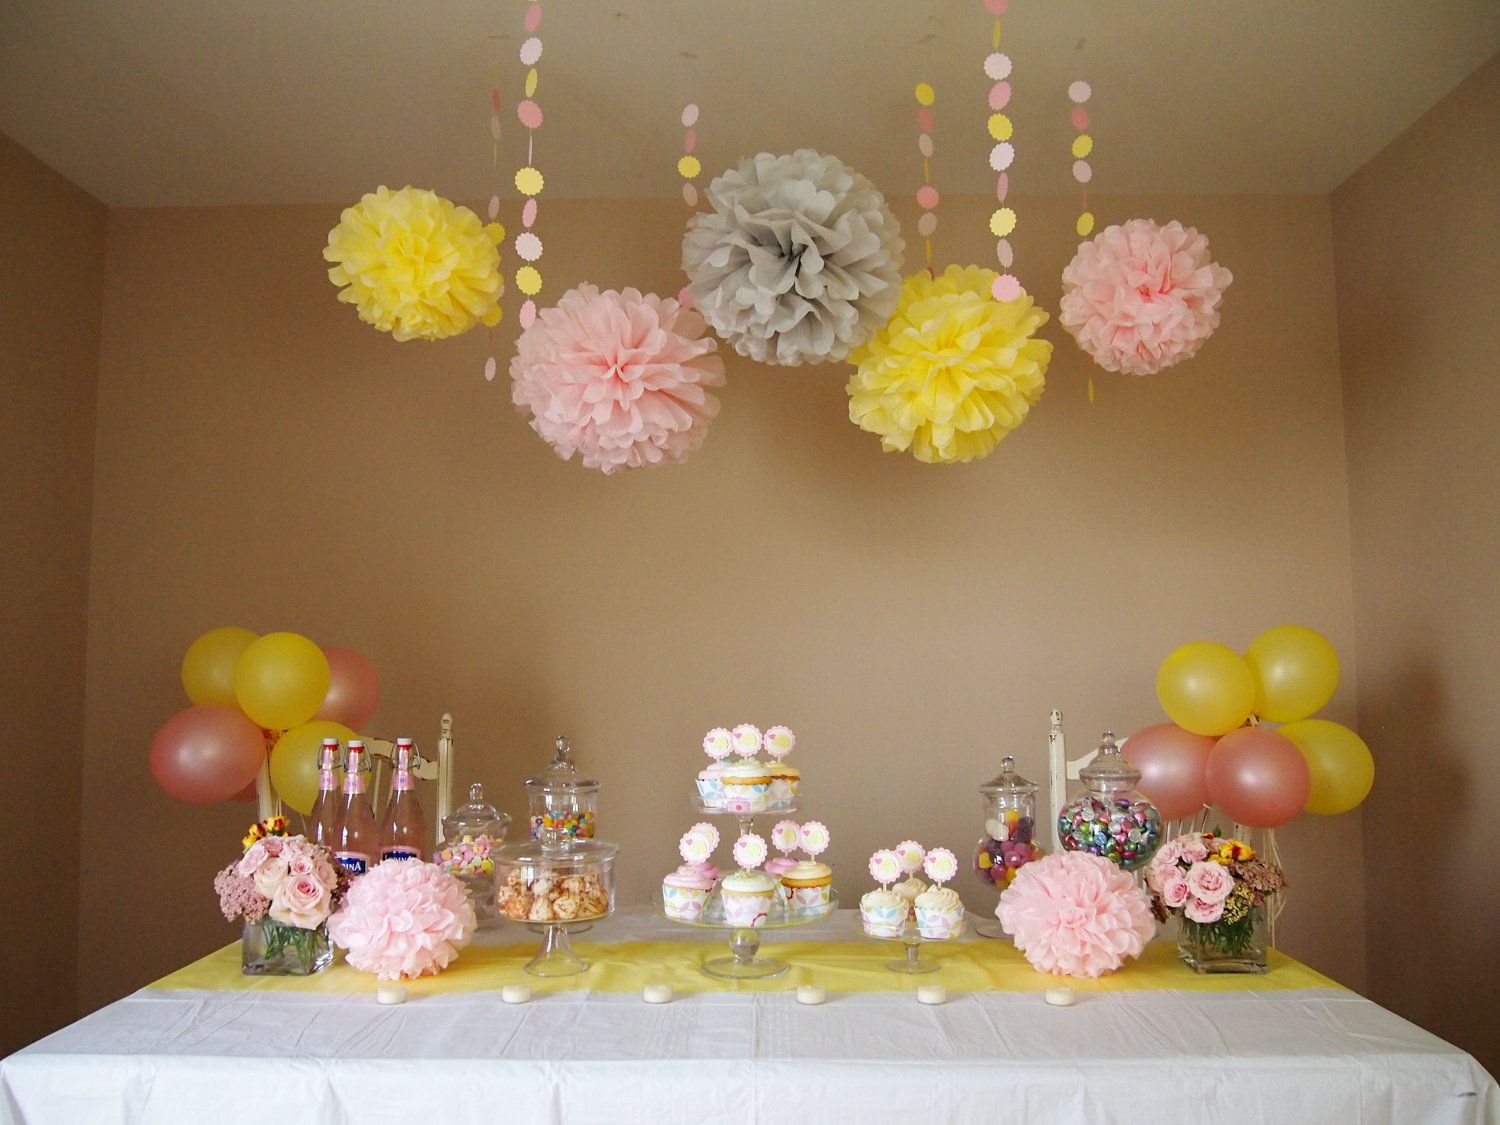 Pink lemonade decorations pink lemonade diy party decoration pink lemonade decorations pink lemonade diy party decoration package baby pink light yellow amipublicfo Gallery